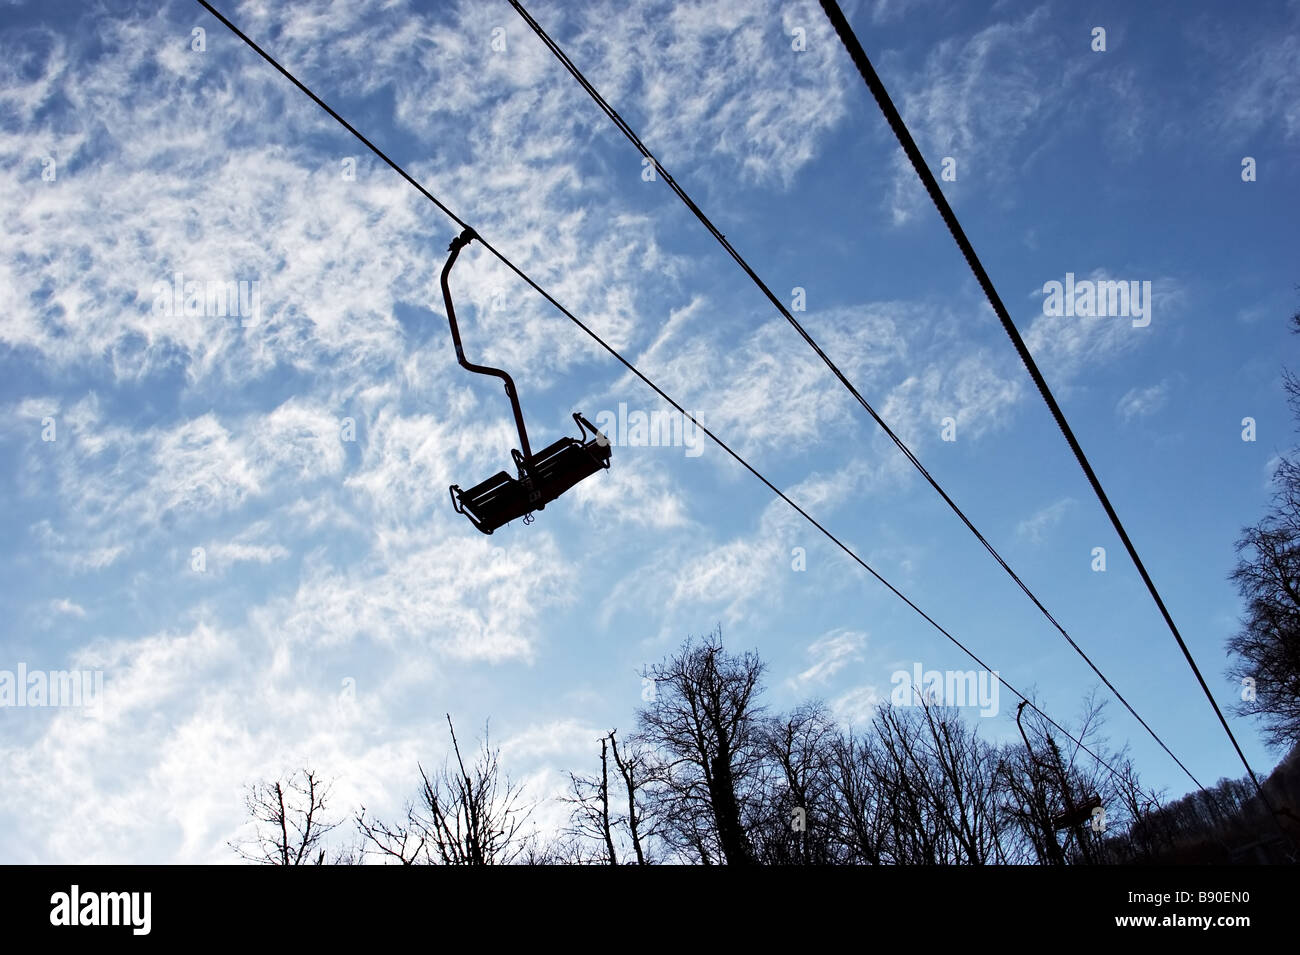 empty chair lift high speed empty chairlift on sky background stock photo 22753836 alamy